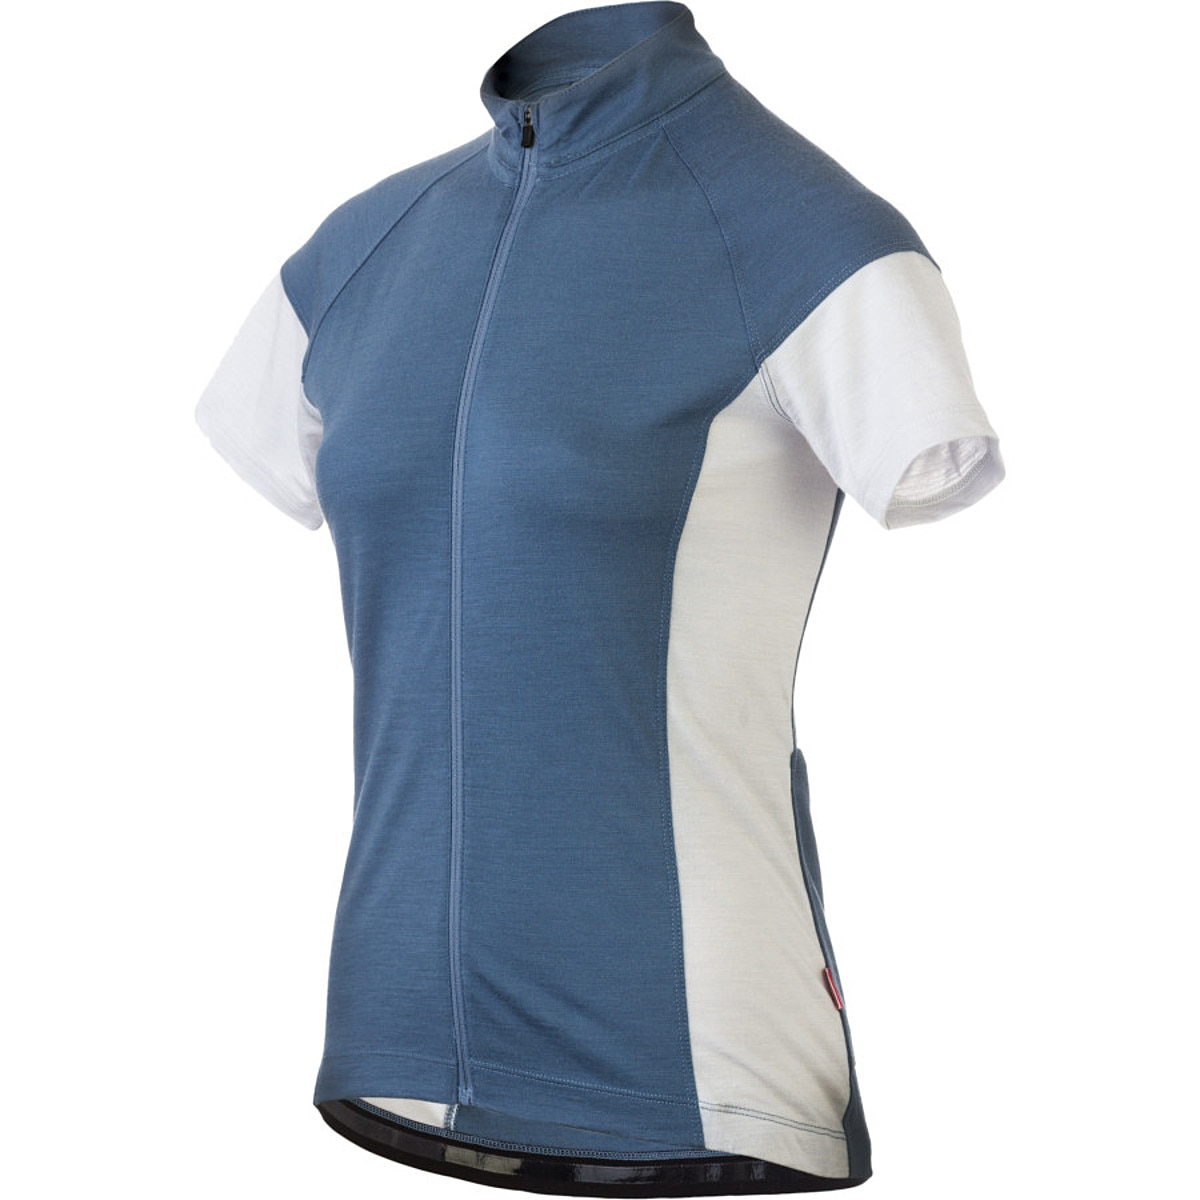 Giro New Road Ride Jersey Short Sleeve Women's